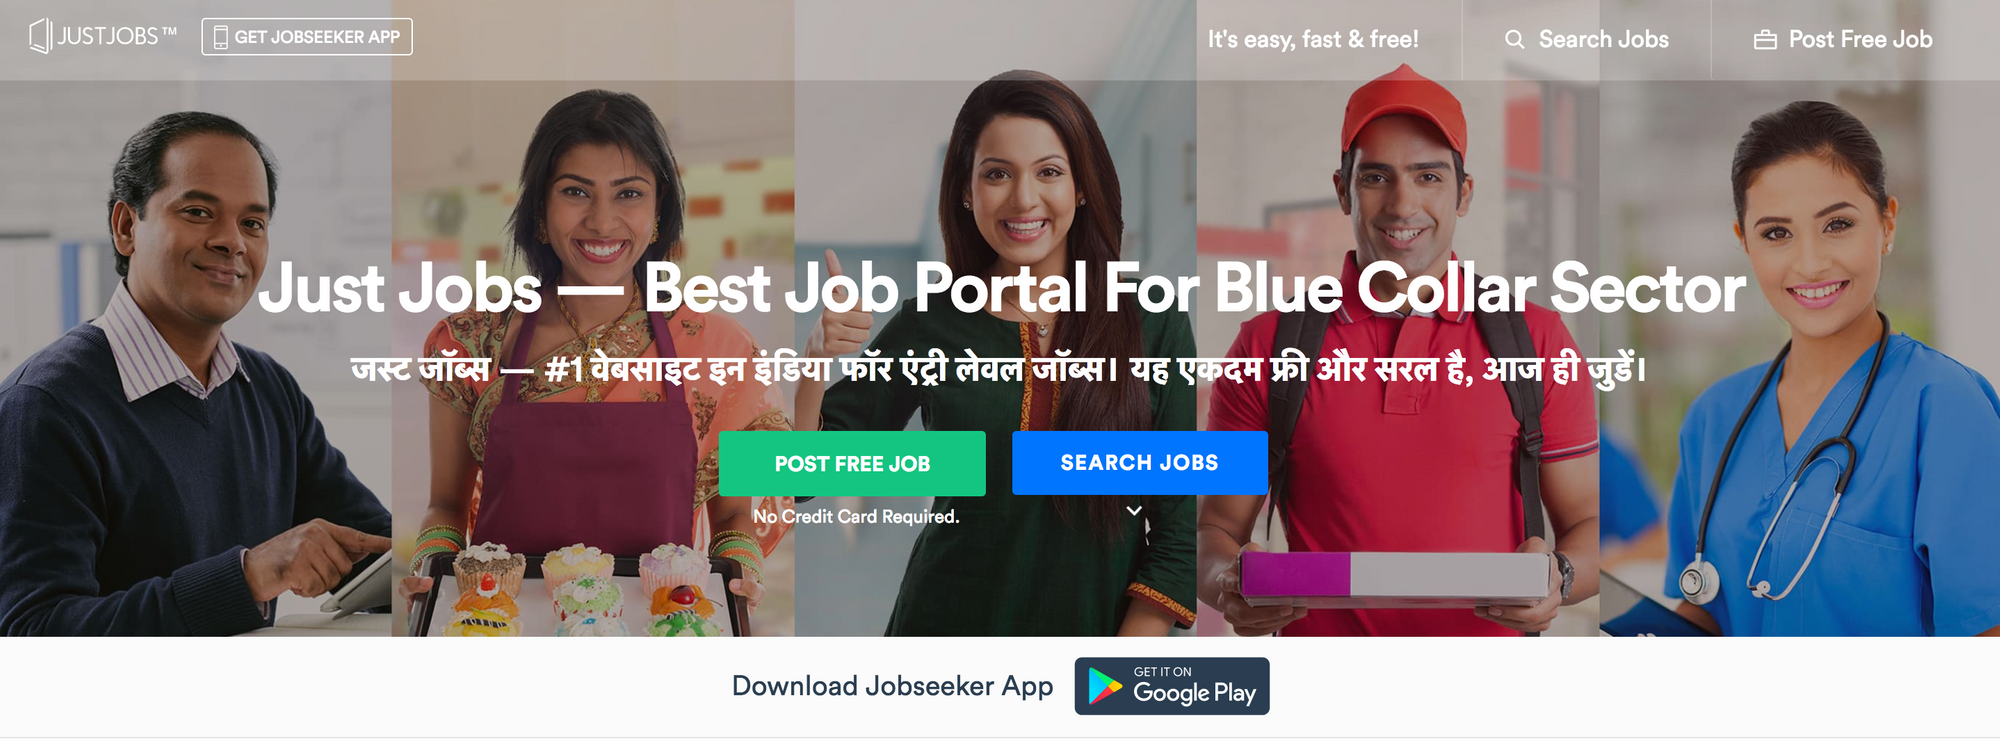 Just.Jobs Website Image